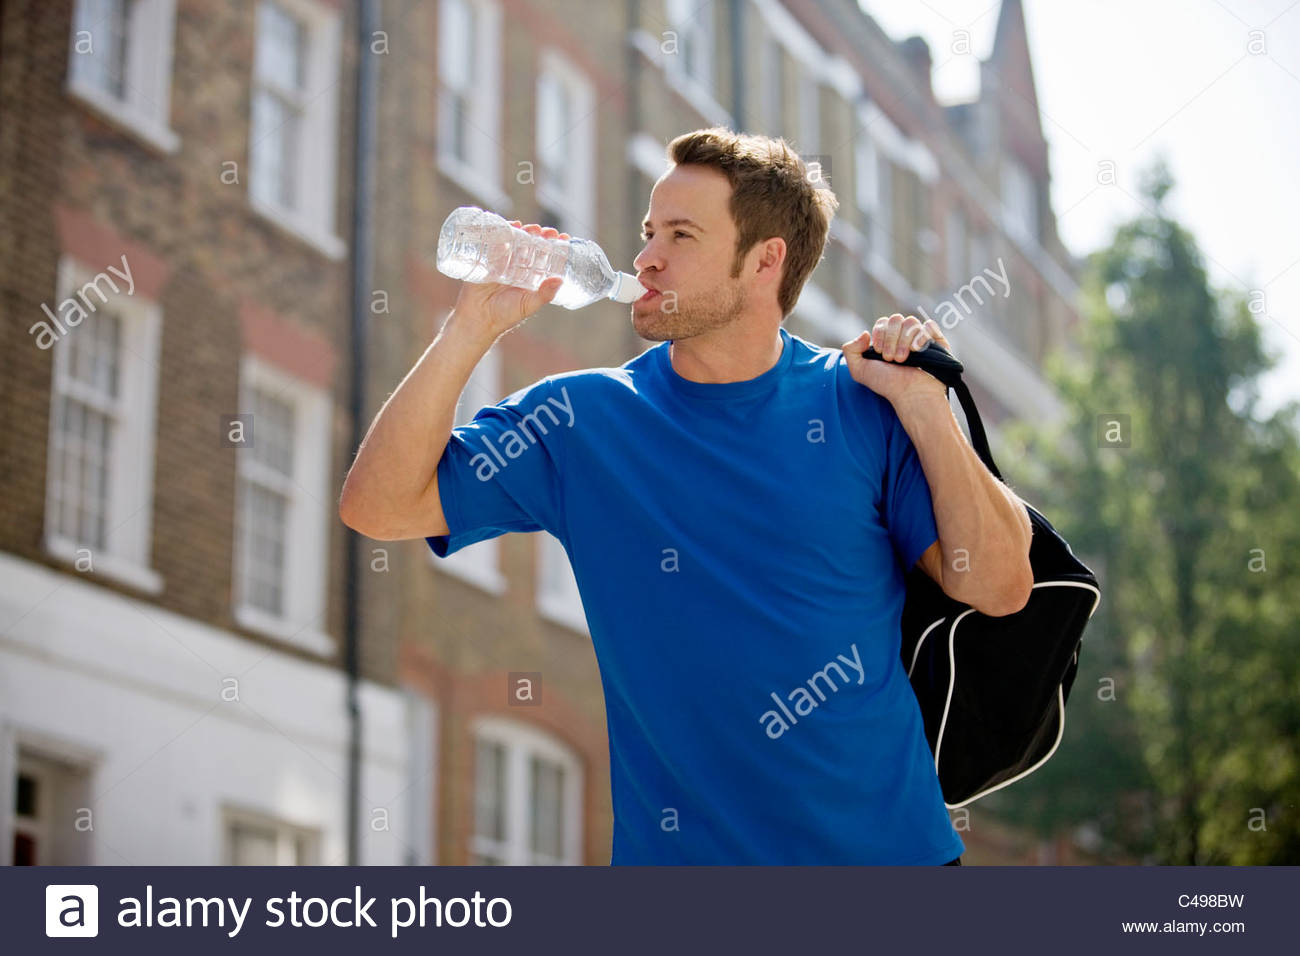 A young man drinking a bottle of water, carrying a sports bag outdoors - Stock Image